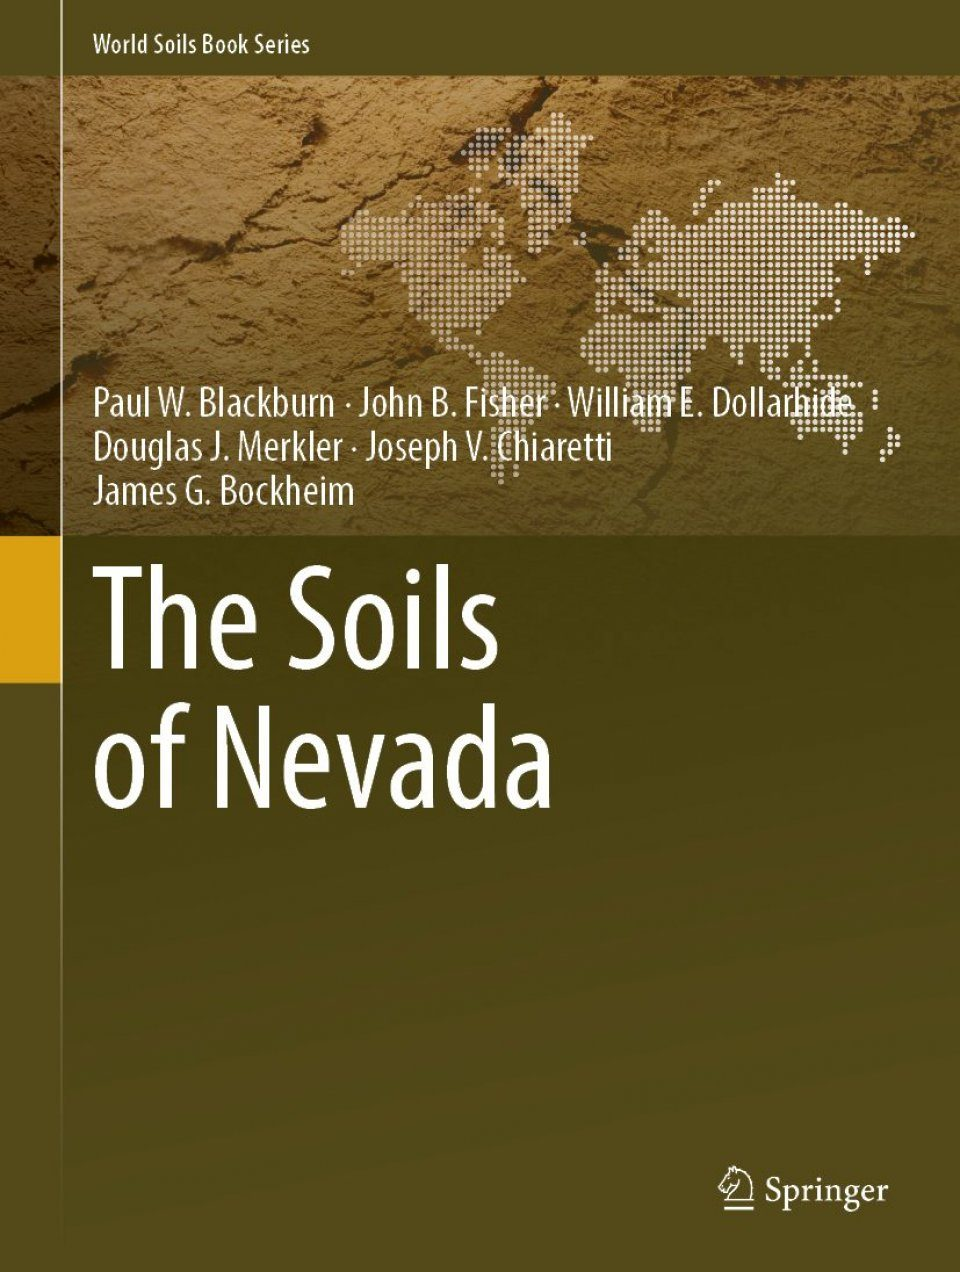 The Soils of Nevada